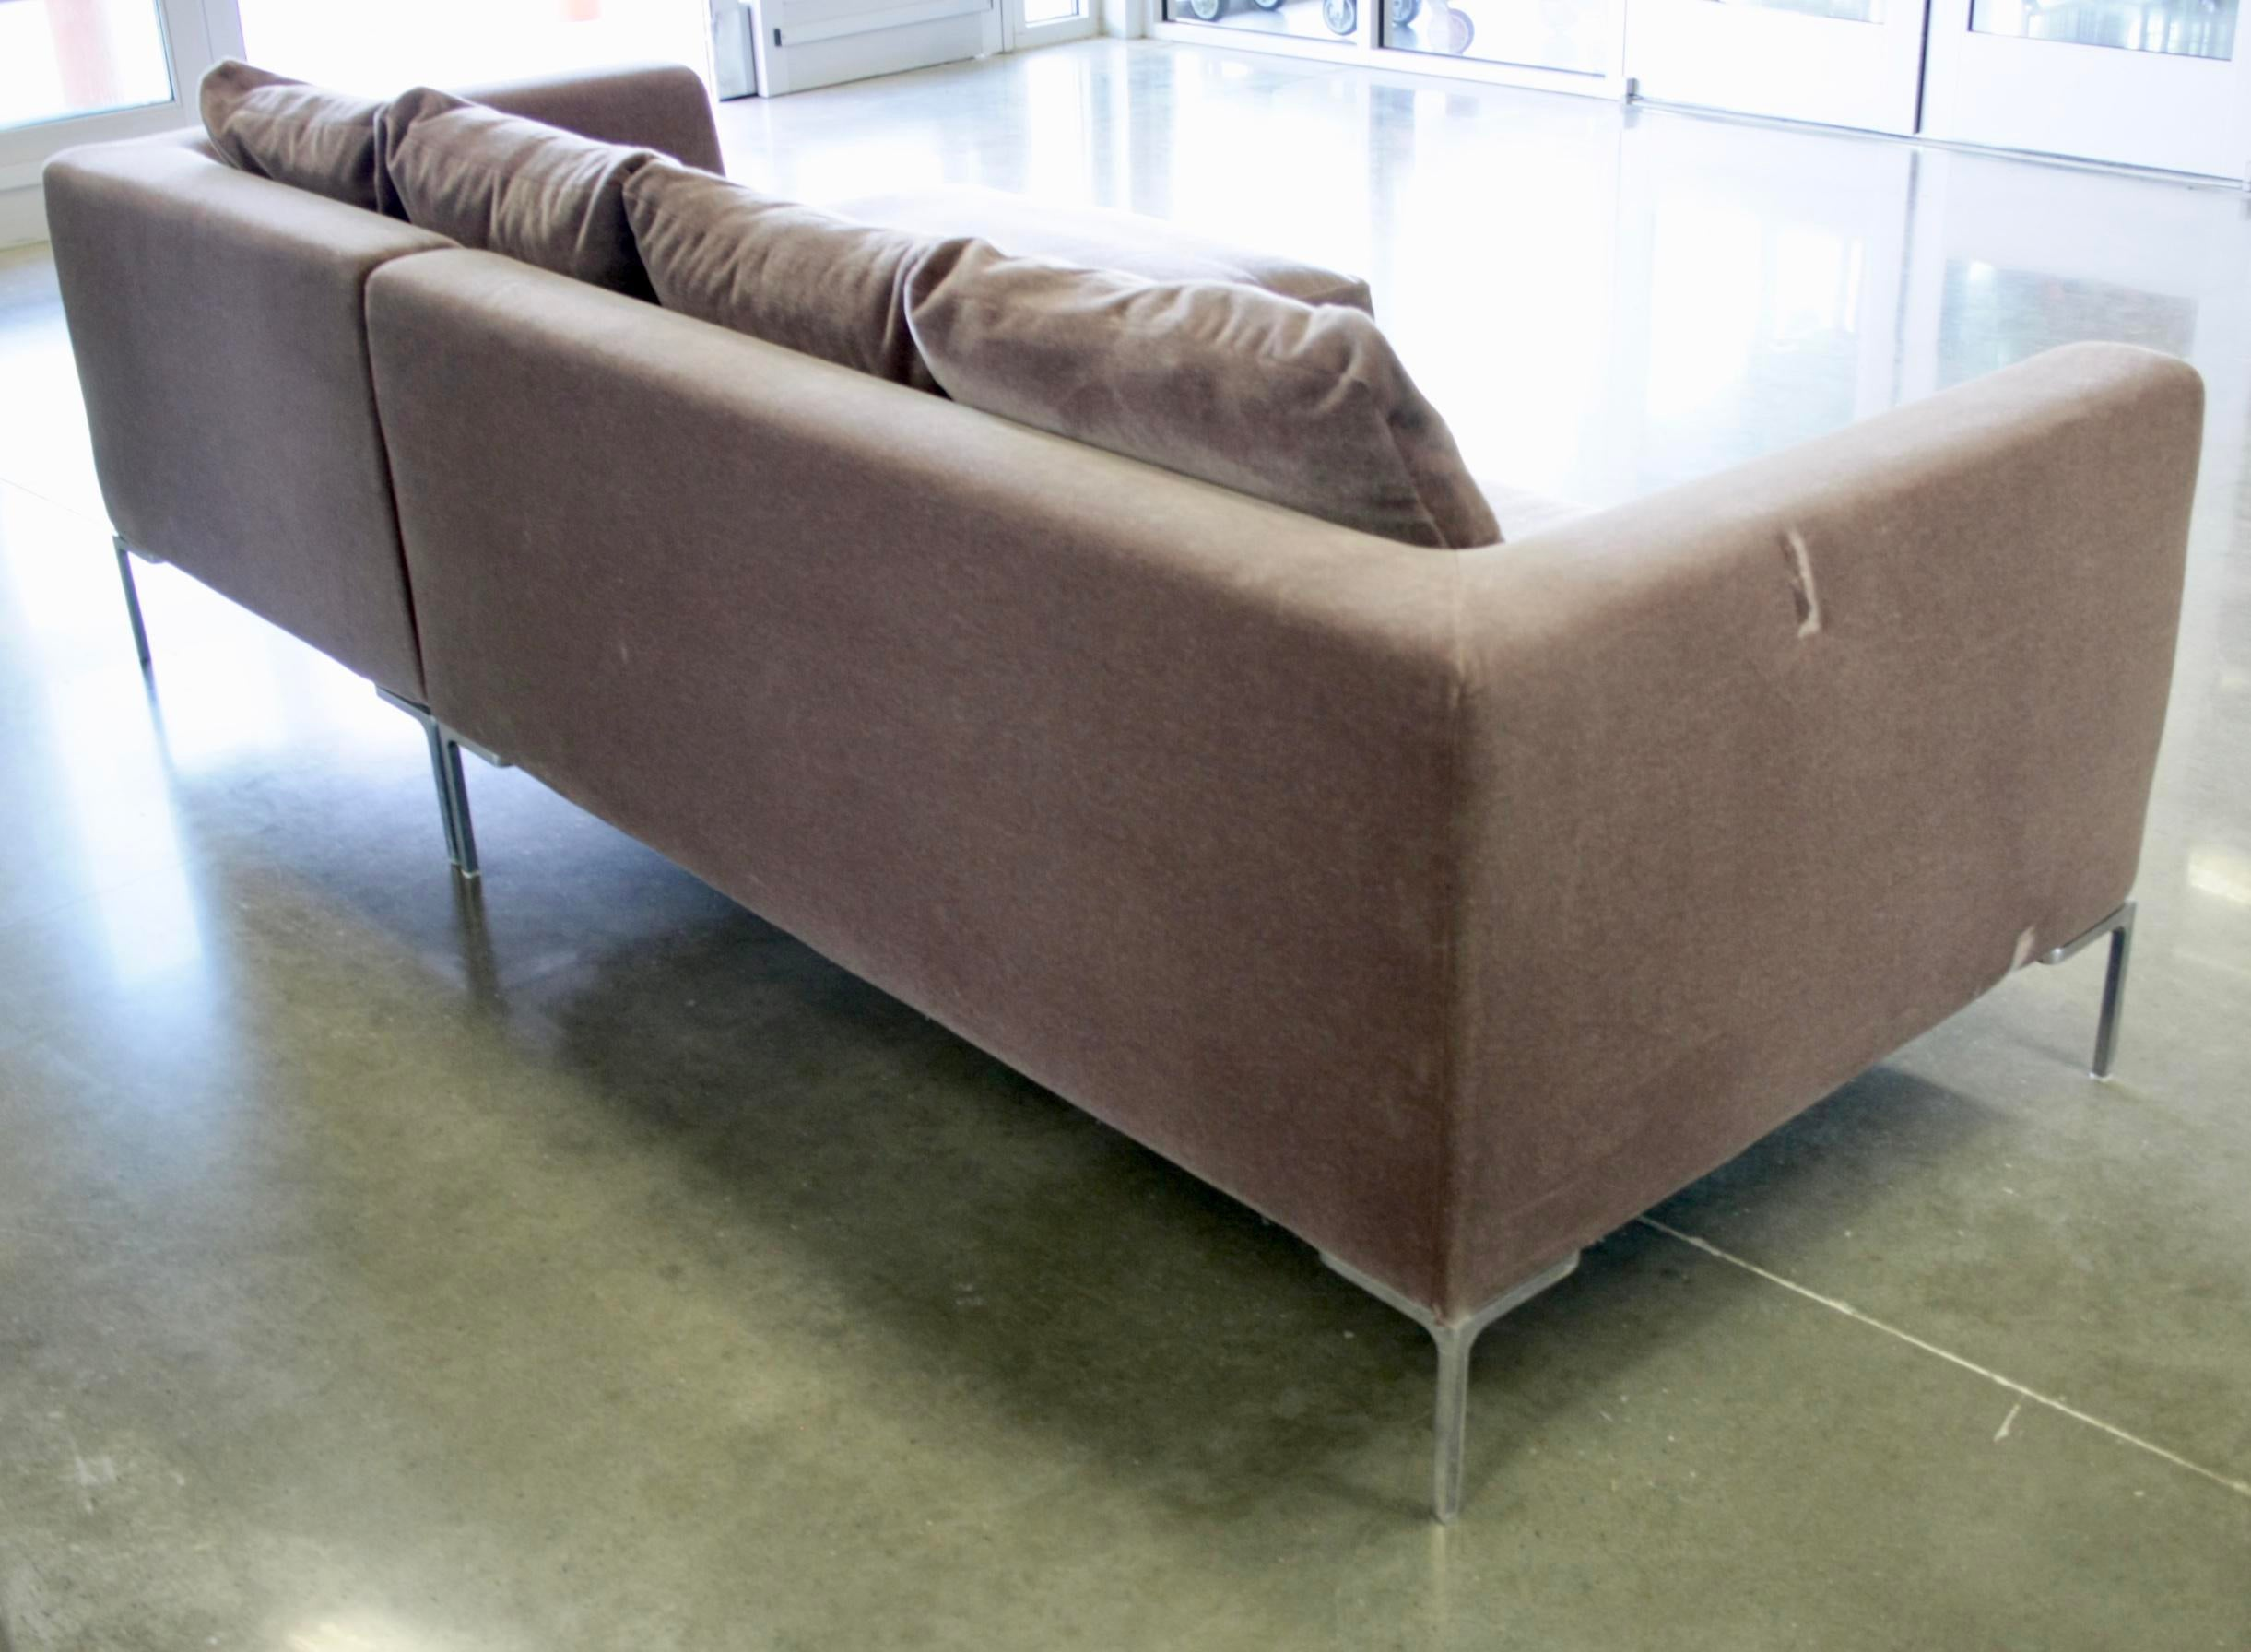 Mohair Sofa By Antonio Citterio For Bu0026b Italia   Image 5 Of 10